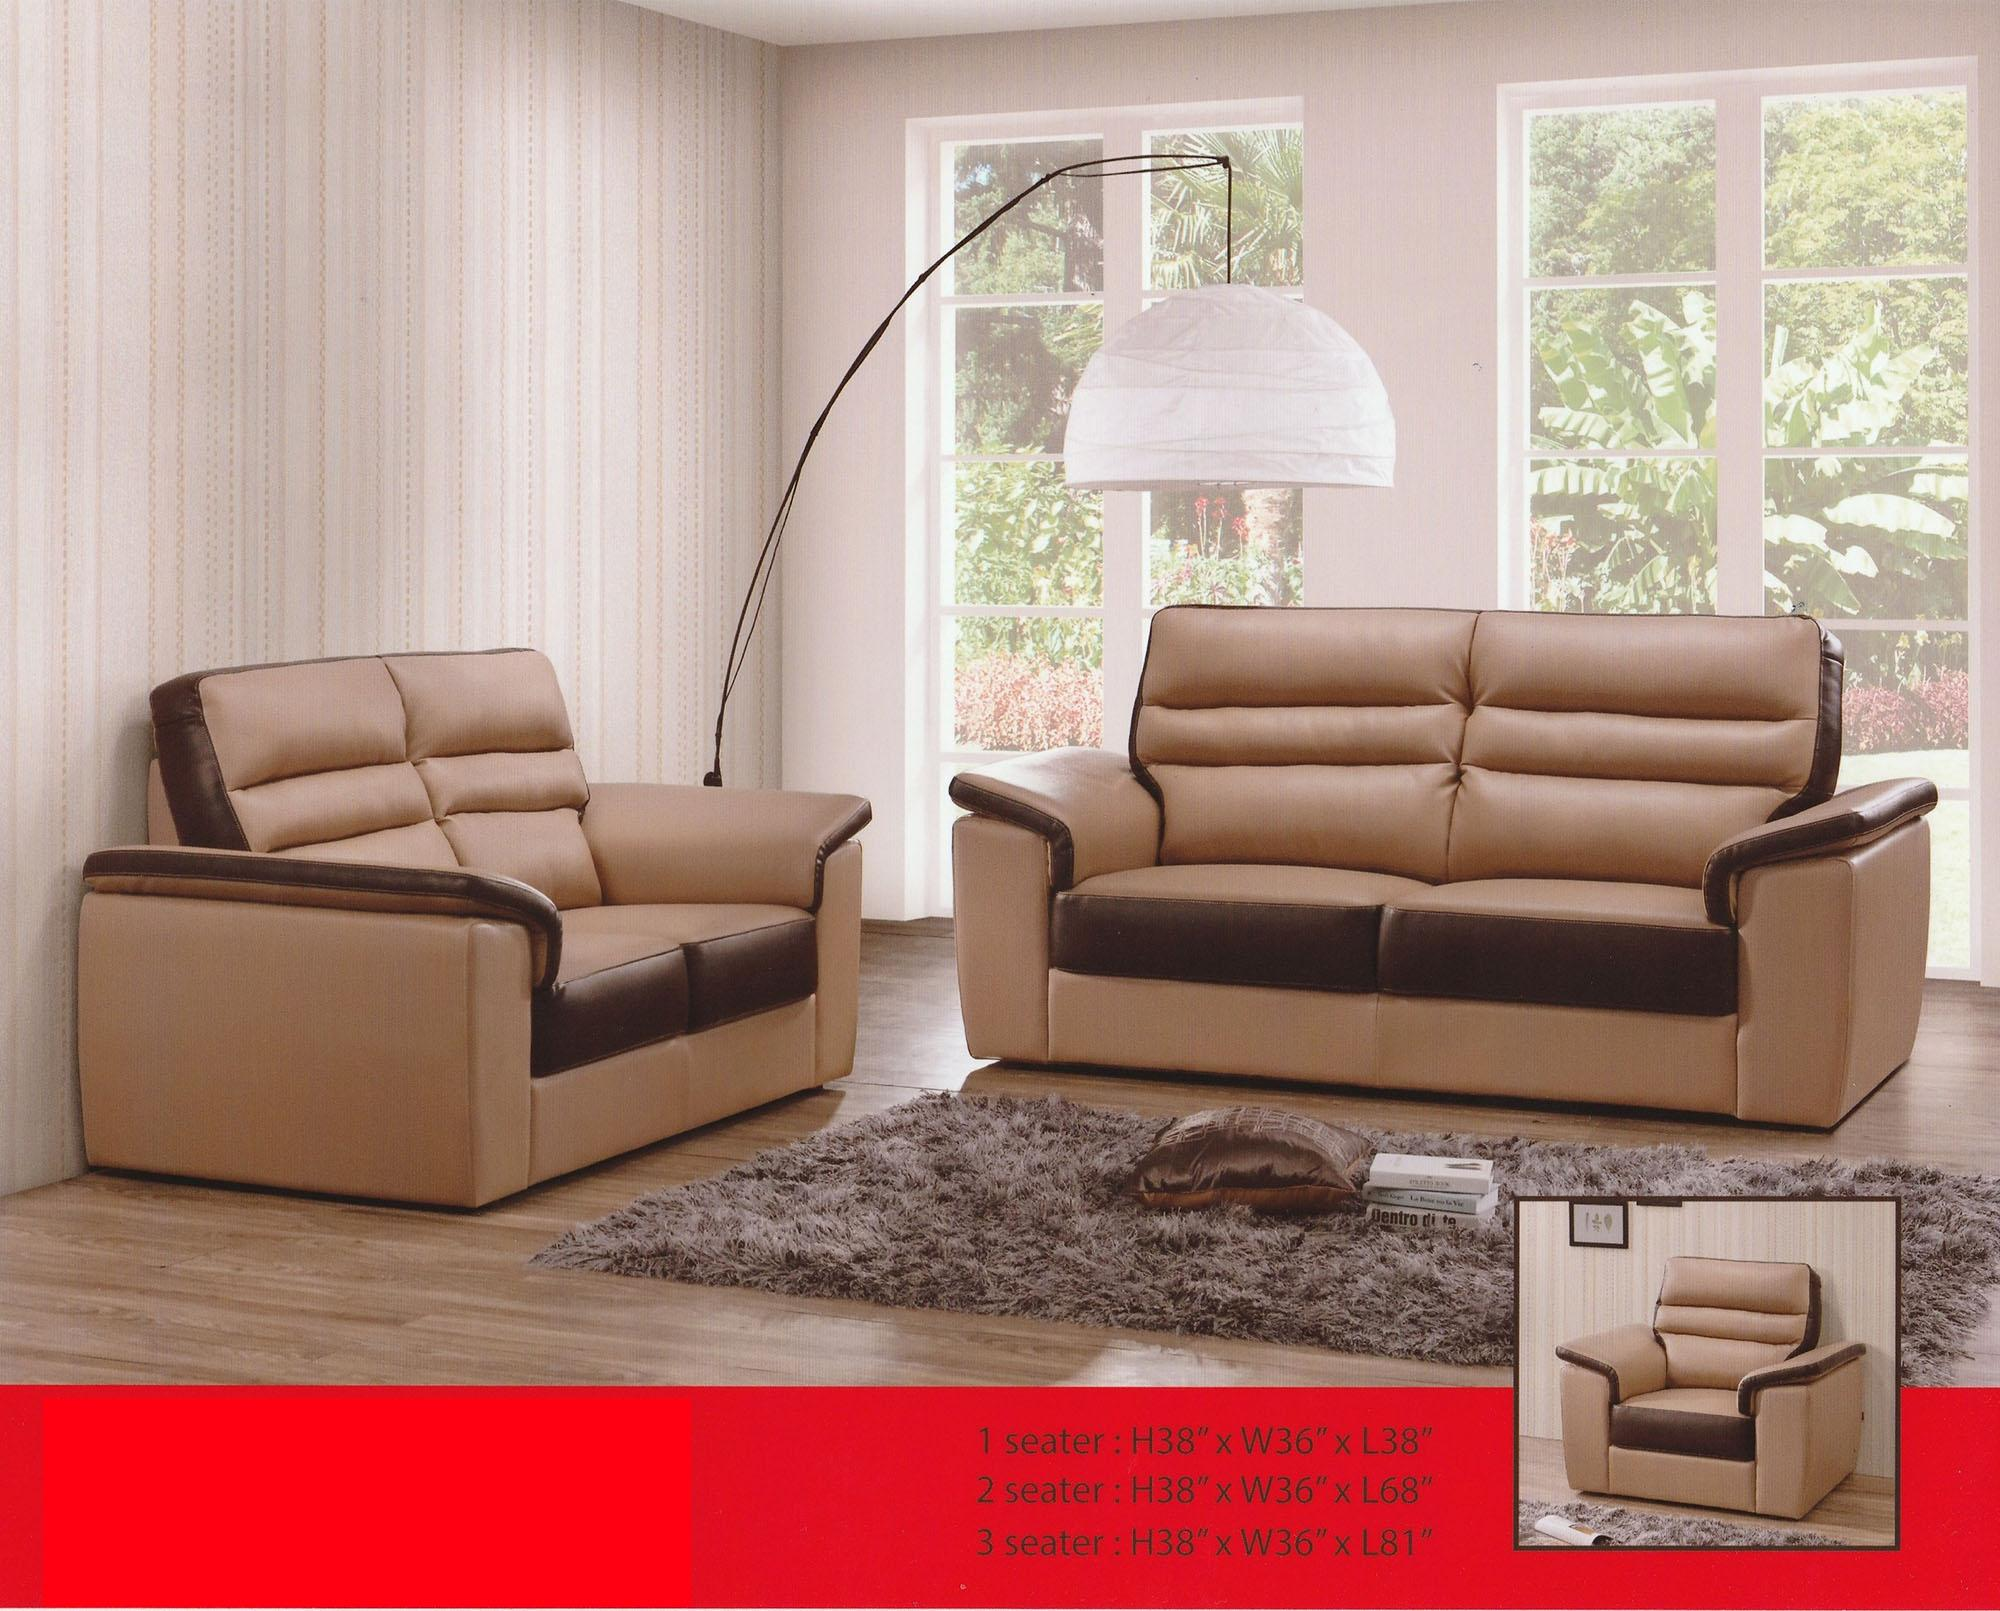 Sofa München Munchen 2 Seater Fully Leather Sofa Lounge Chair Relax Sofa